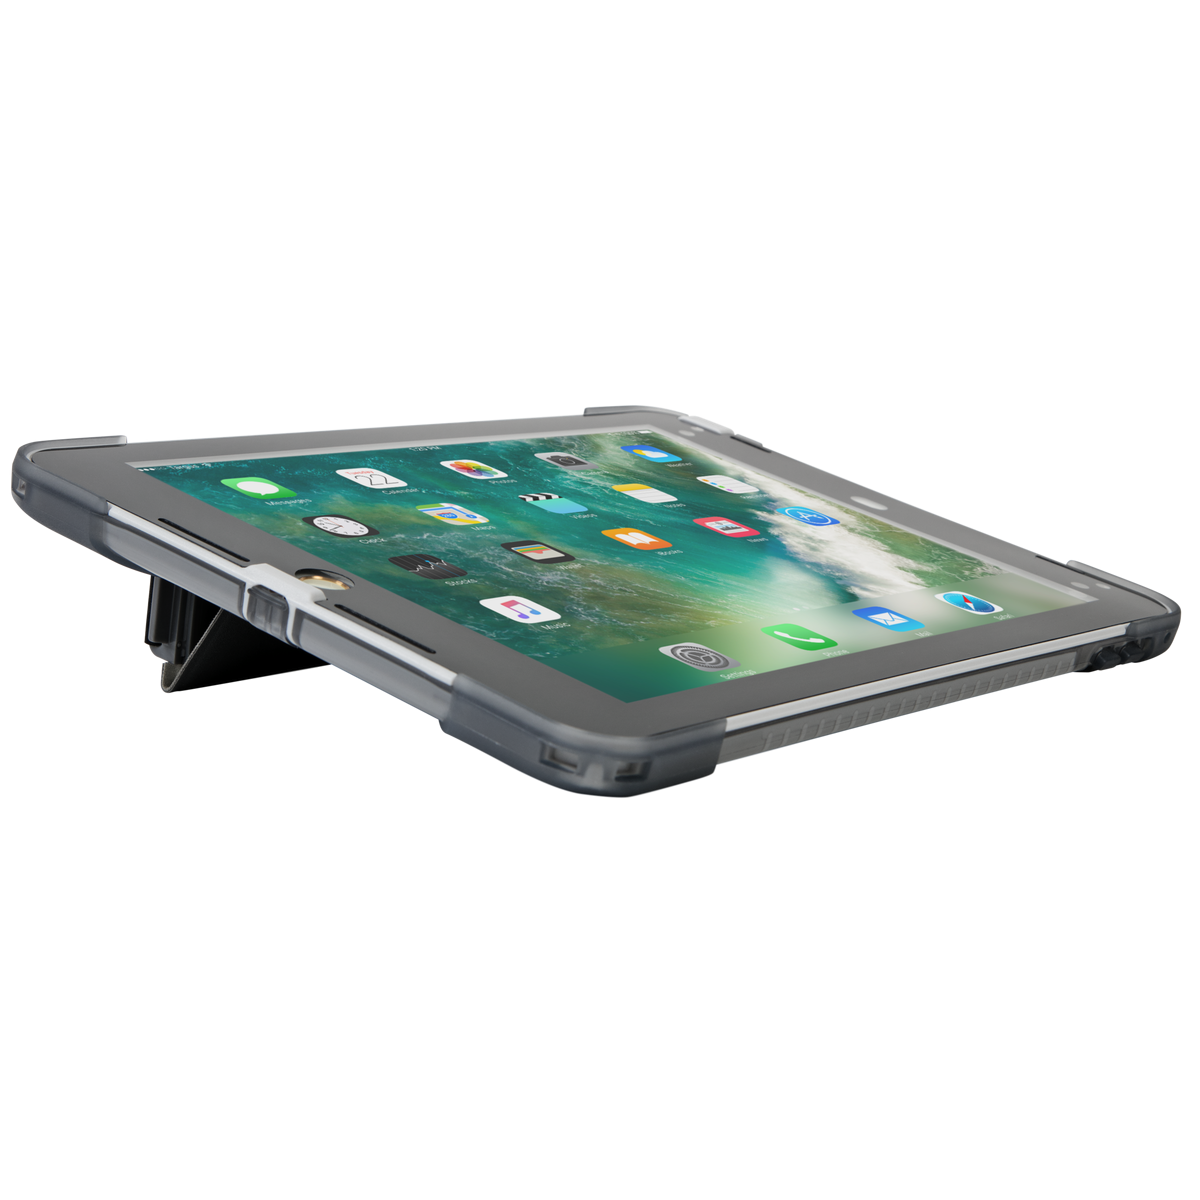 Picture Of Safeport Rugged Case For Ipad 2017